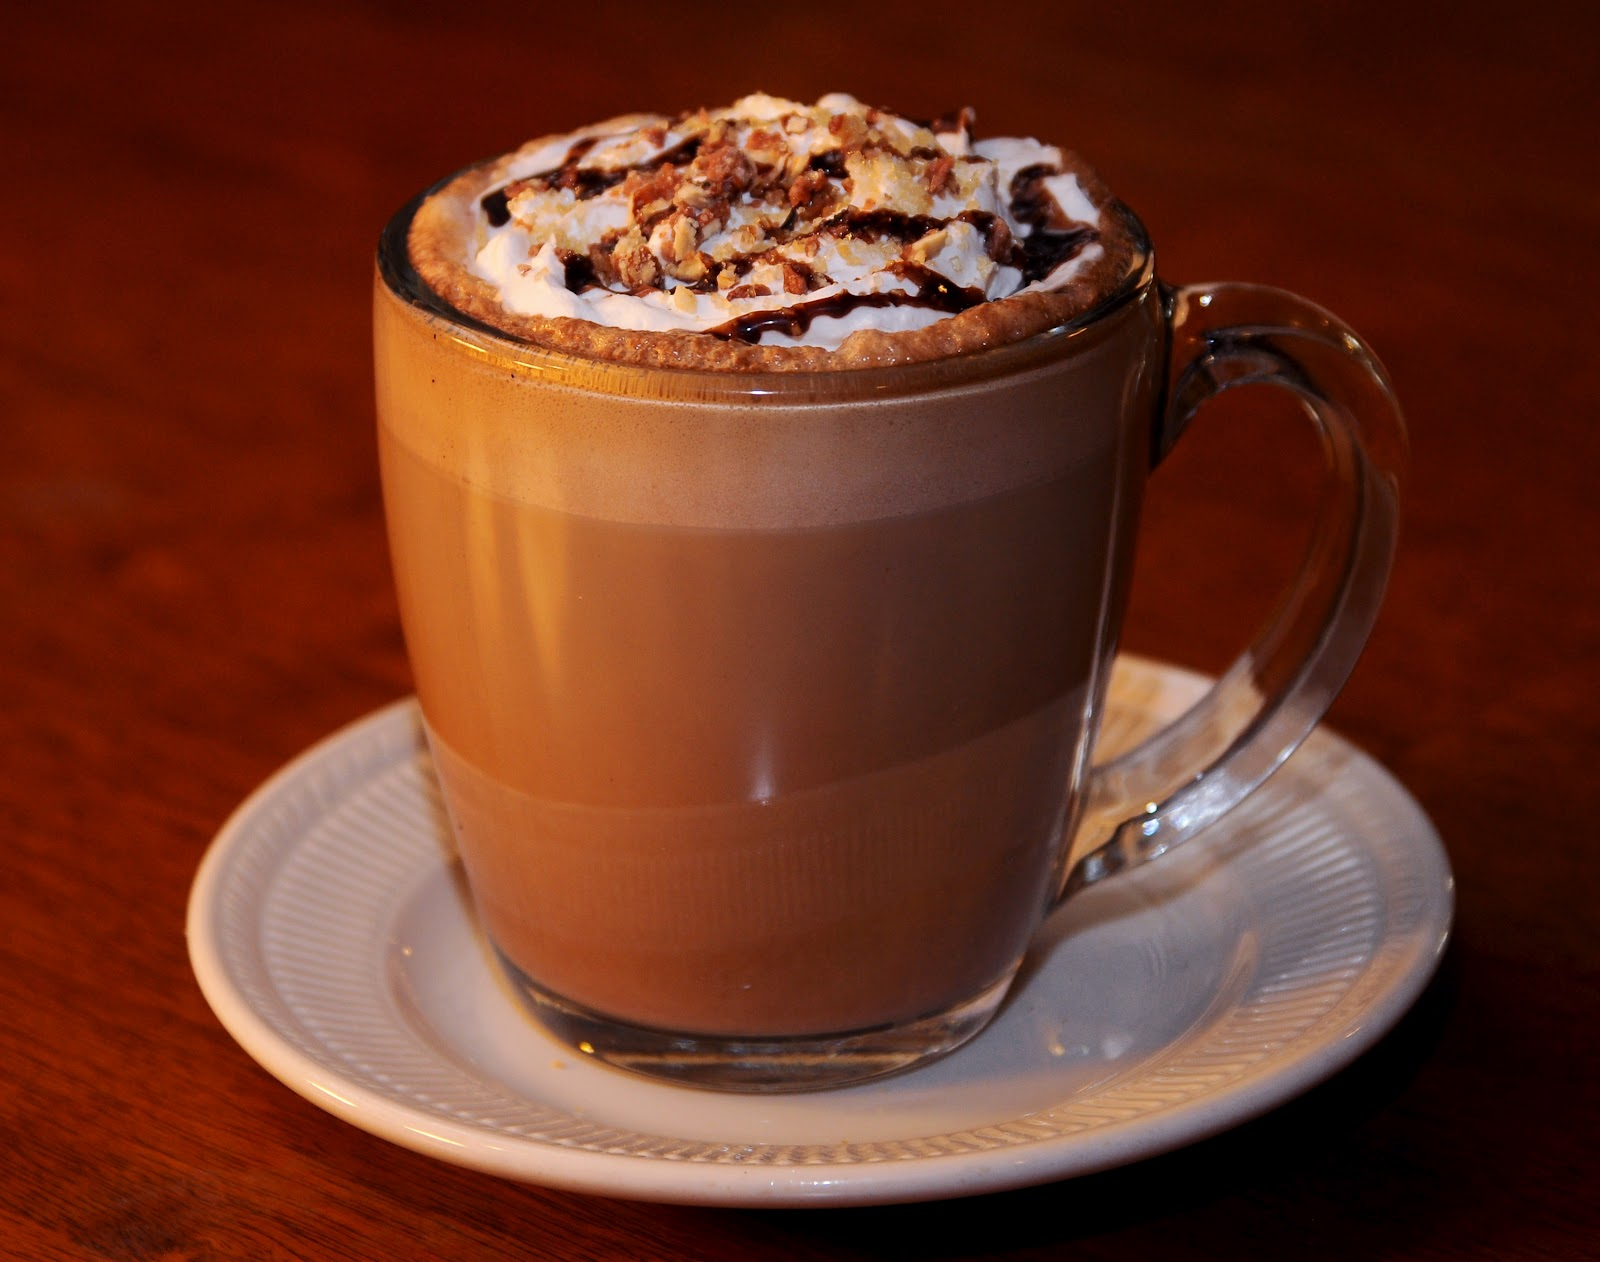 the toffee-nut mocha. A delicious combination of chocolate, toffee ...